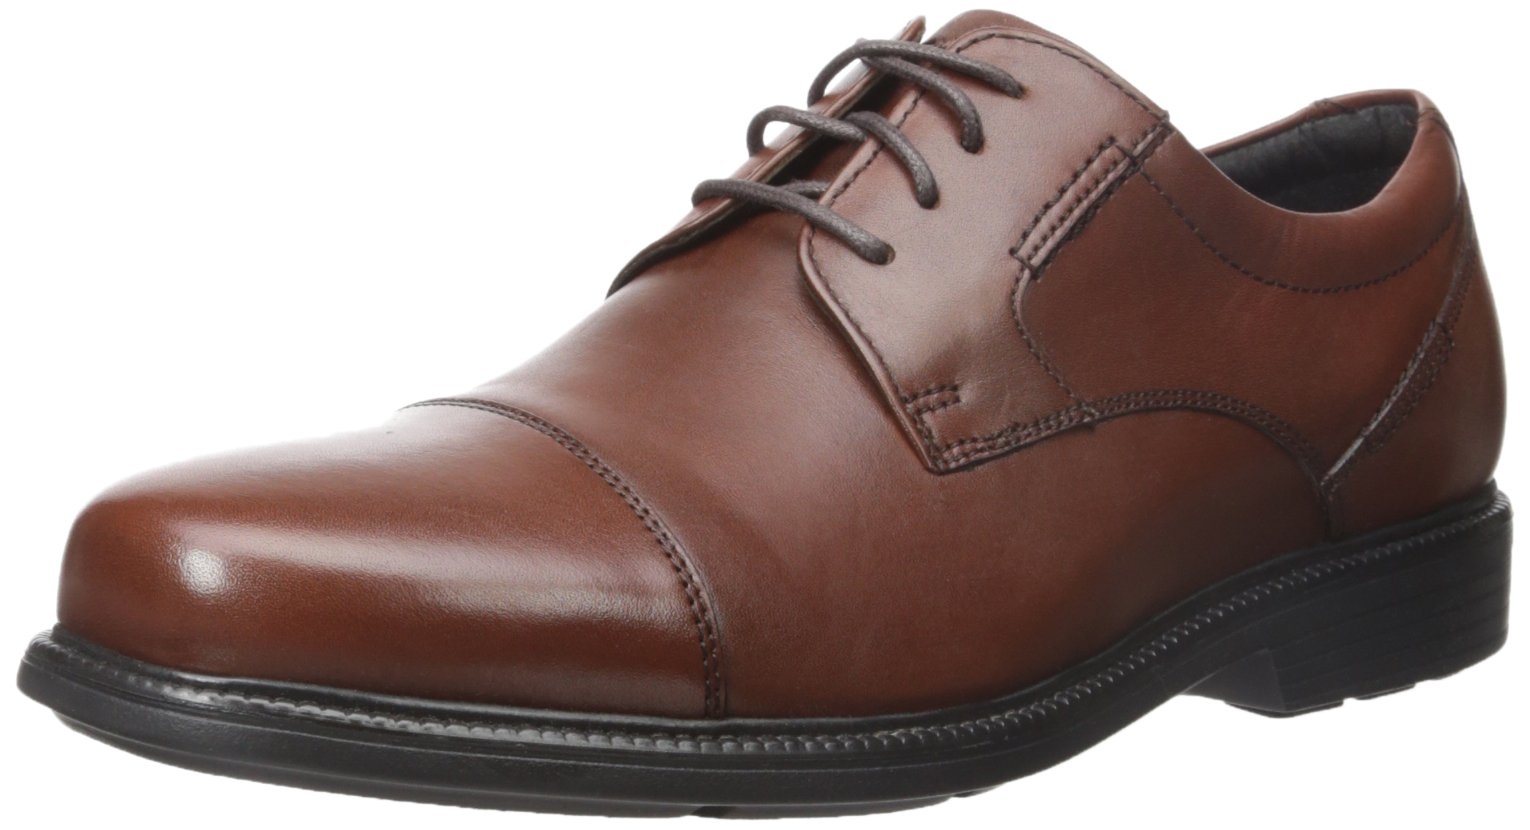 Rockport Men's Charles Road Cap Toe Oxford Tan II Leather 10.5 M (D)-10.5  M by Rockport